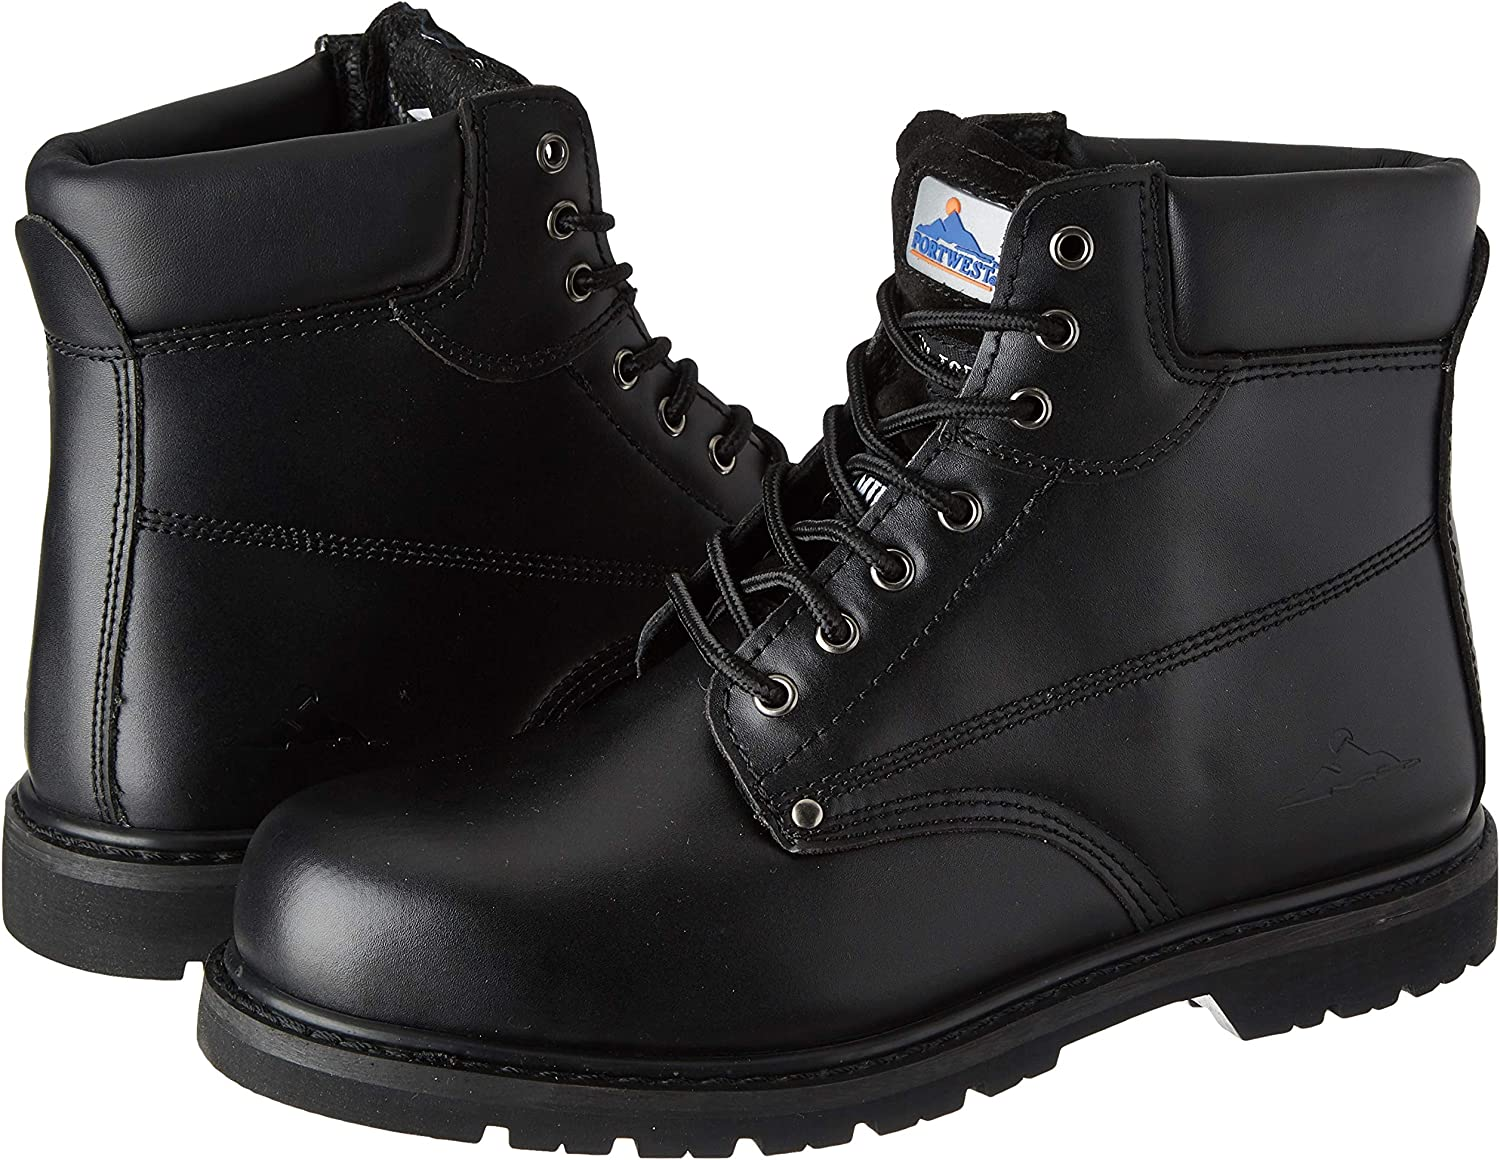 Portwest FW16-Boot welted PAS 39//6 FW16BKR39